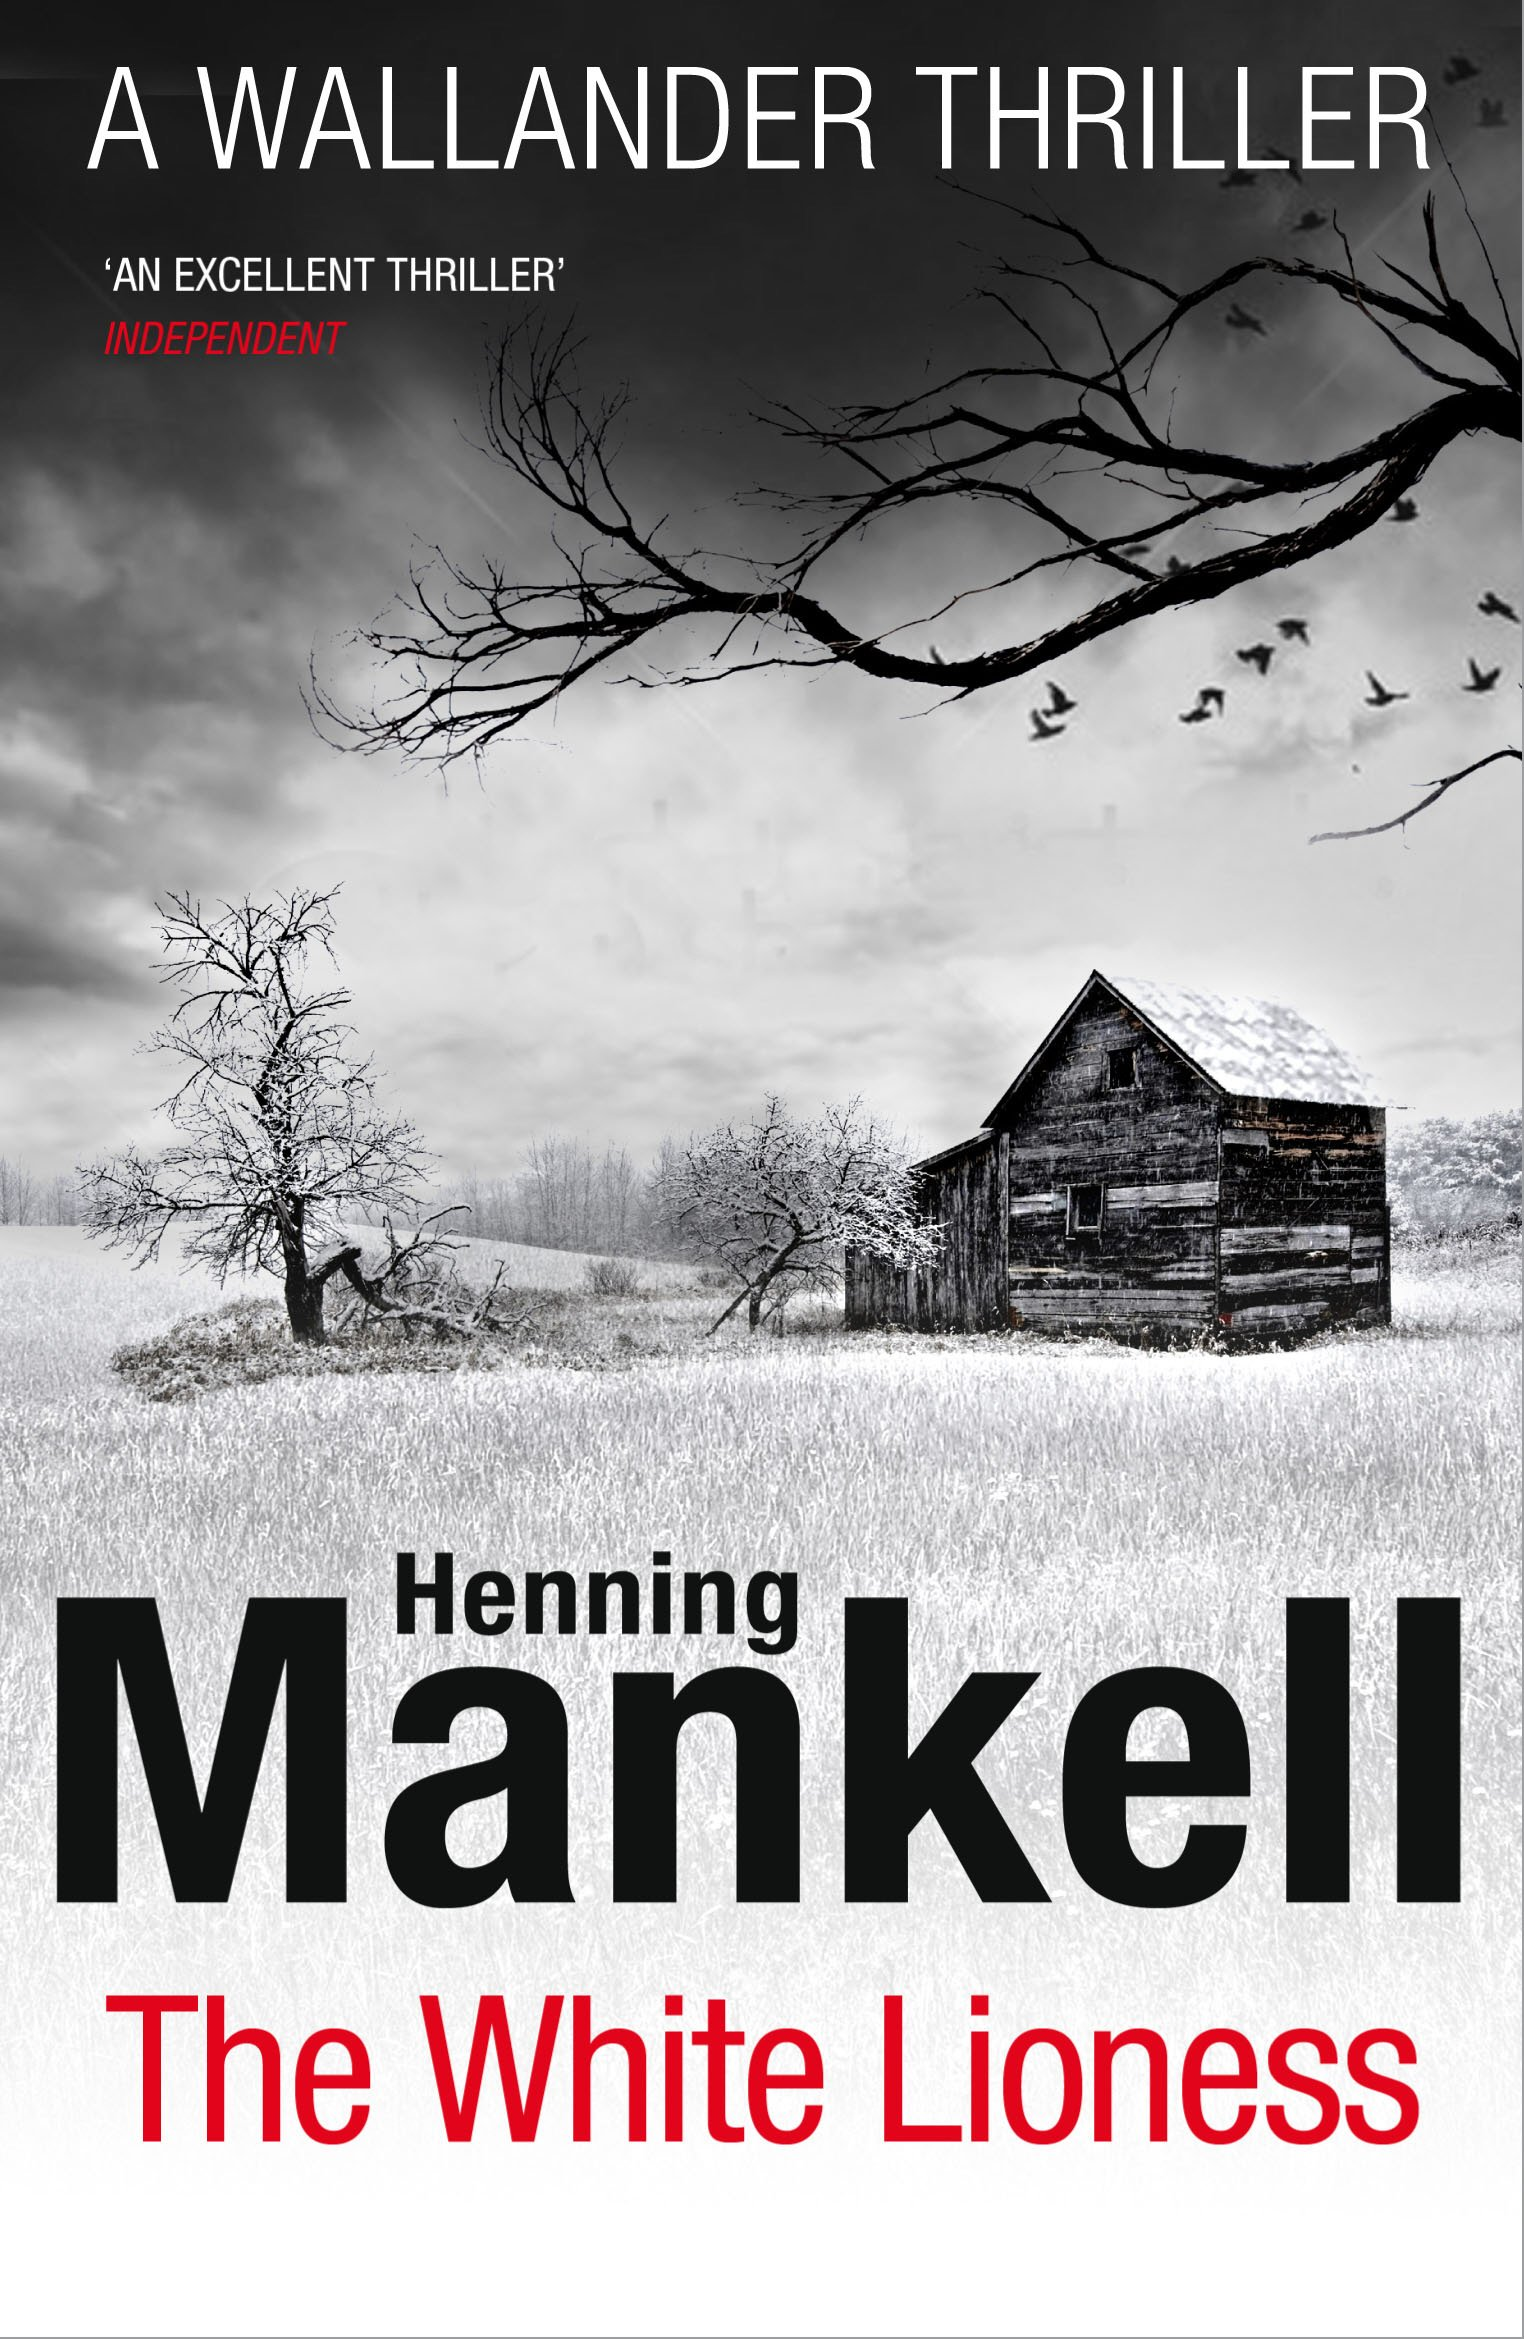 Henning Mankell Novelas Kurt Wallander Book Dphw Liesniot Site